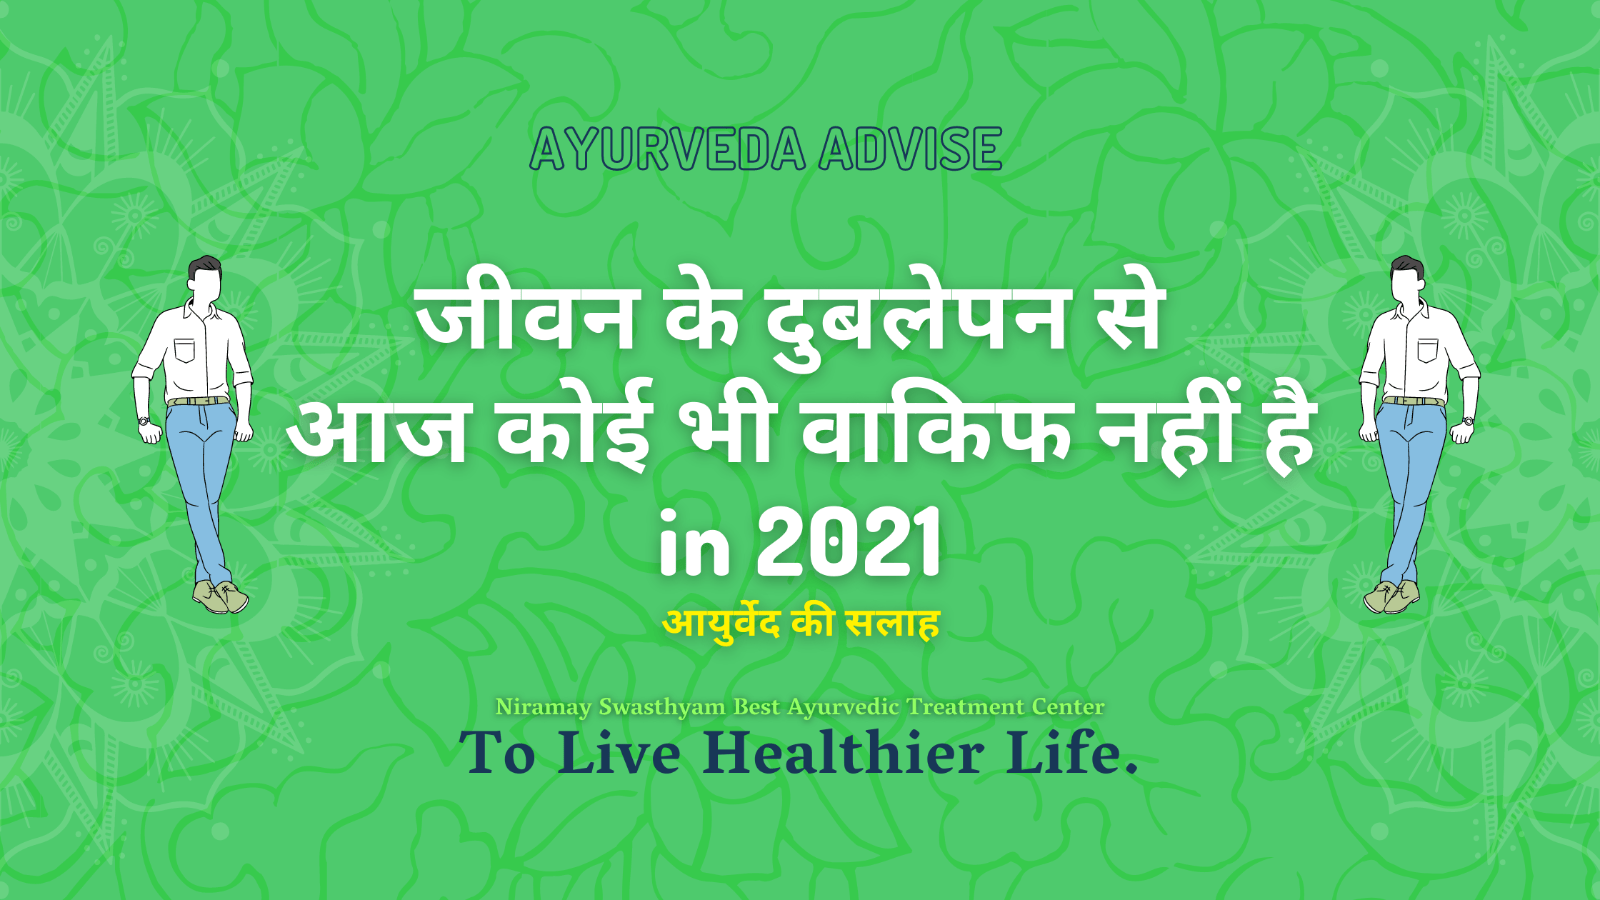 blog 22 दुबलापन (No one is aware of the leanness of life today in 2021)